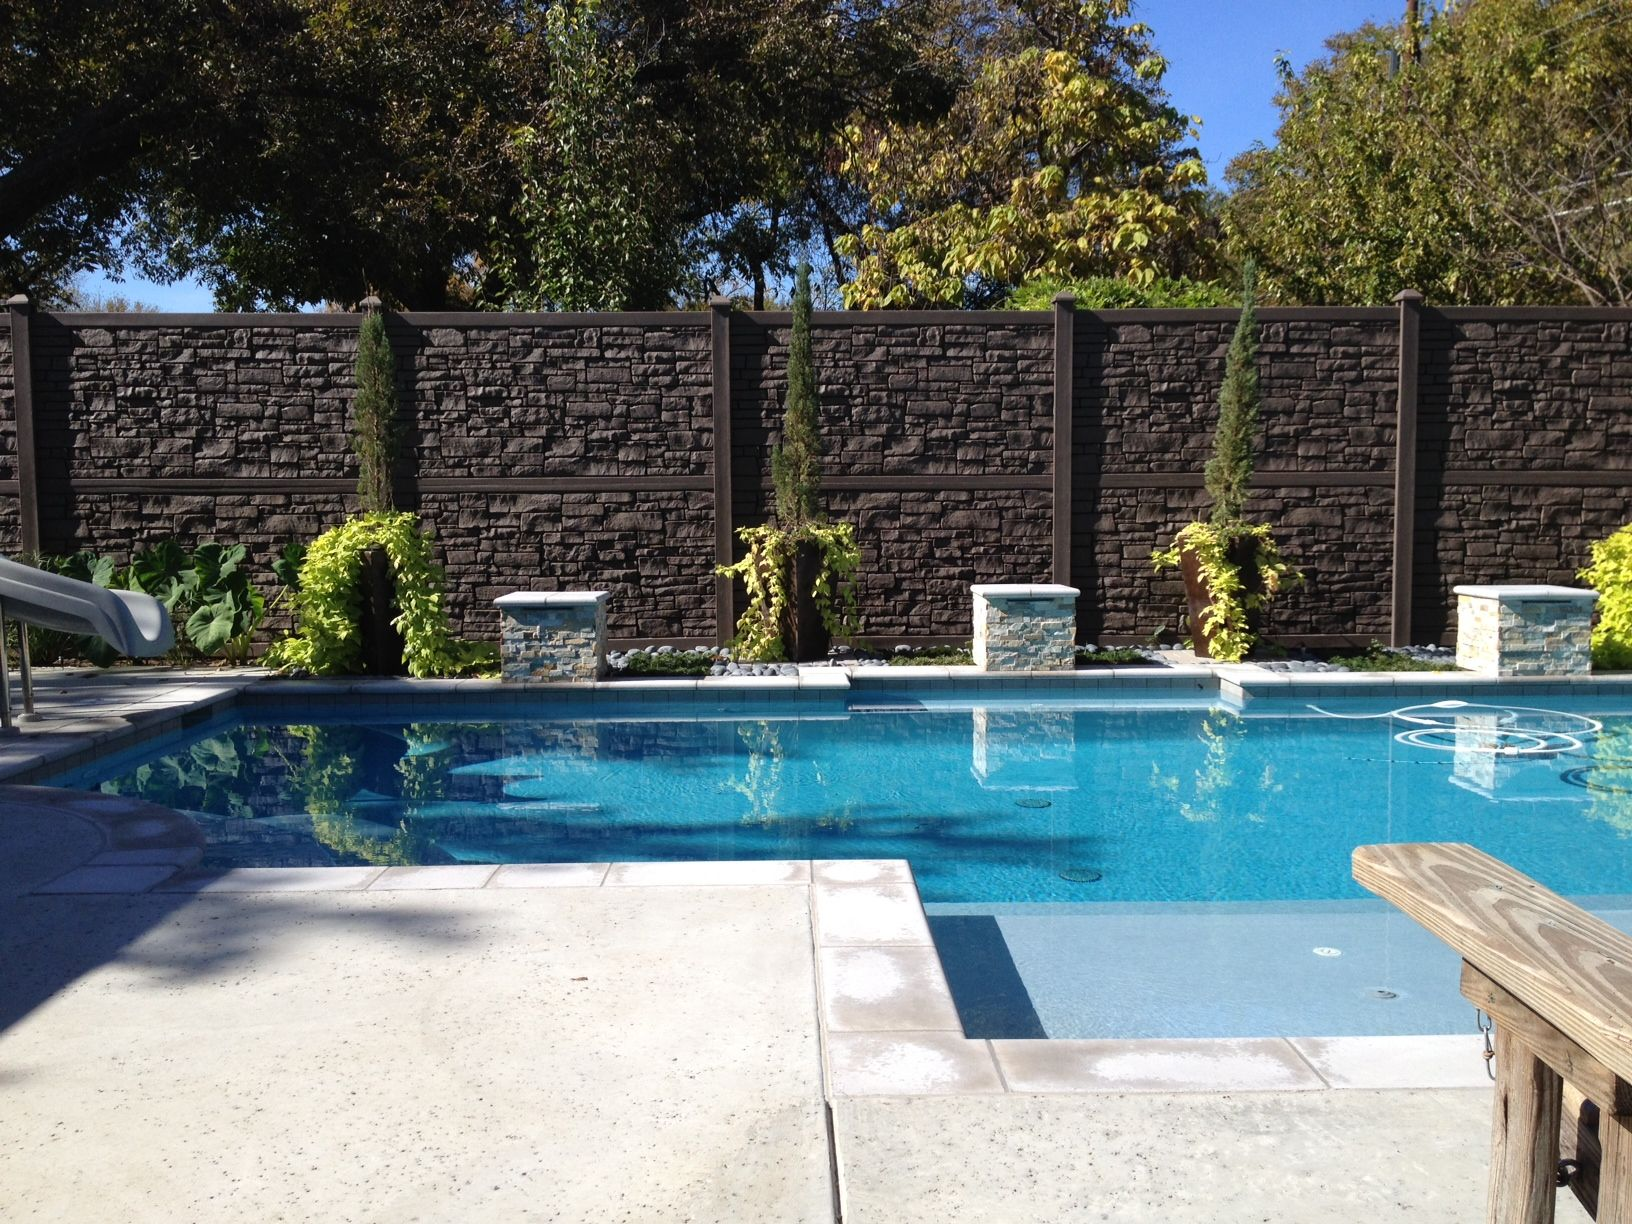 Garden Ideas Around Swimming Pools fence, fencing, privacy fence around swimming pools #lovemyfence